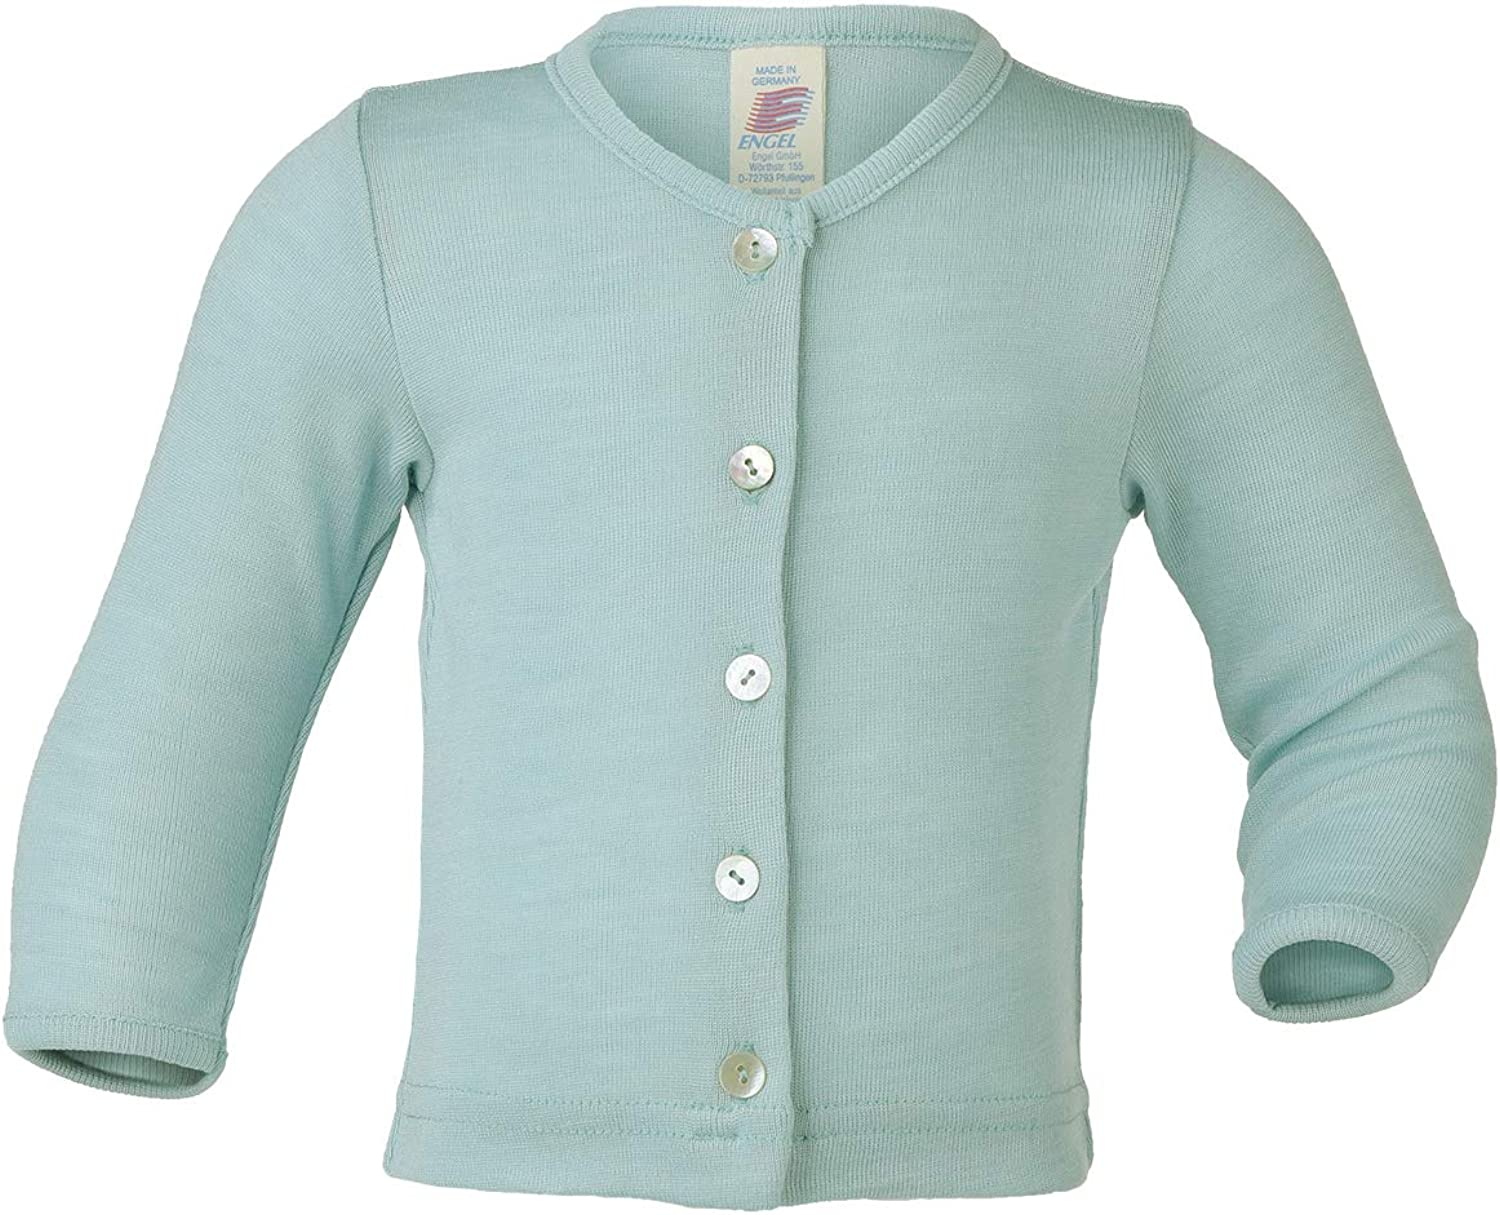 Engel Merino Wool Silk Baby Cardigan Blouse Jacket Shirt top Buttons 70 6441